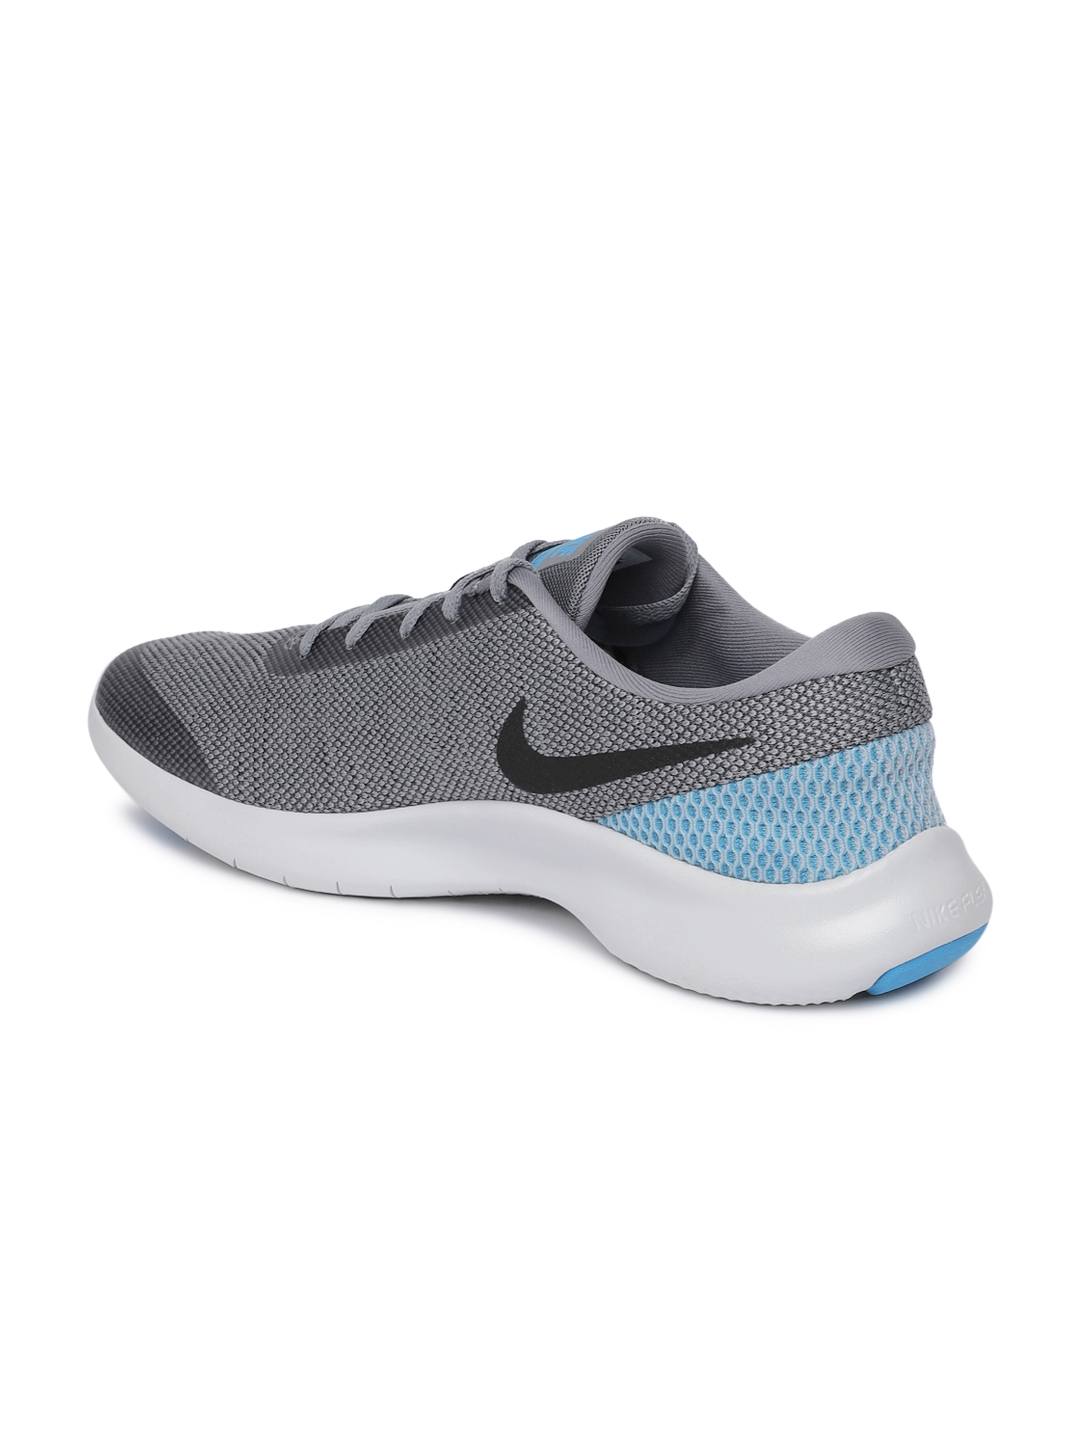 84cff505a2d1c Buy Nike Men Grey Flex Experience RN 7 Running Shoes - Sports Shoes ...